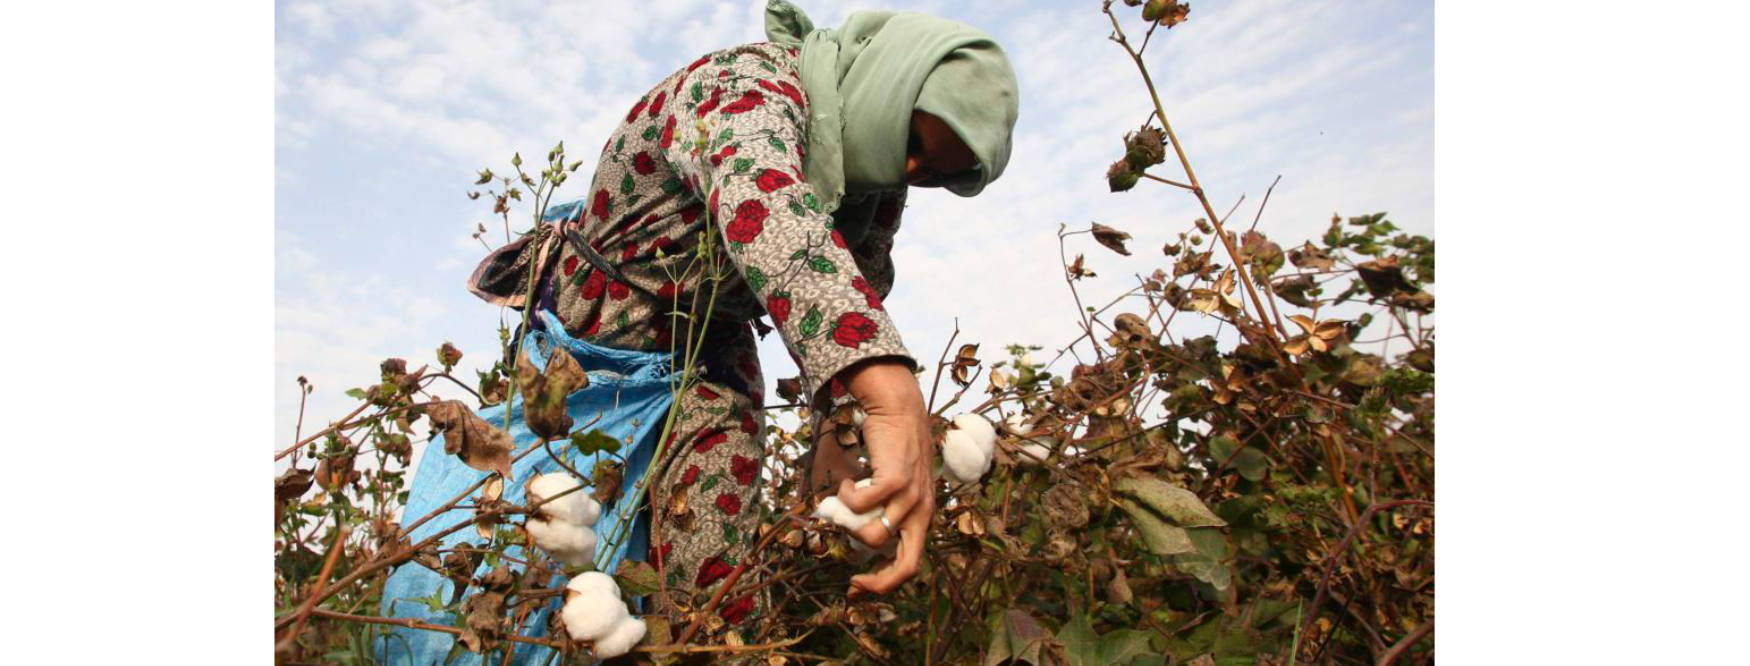 A worker picks cotton in Uzbekistan, a country known for its modern slave-like working conditions in the cotton industry